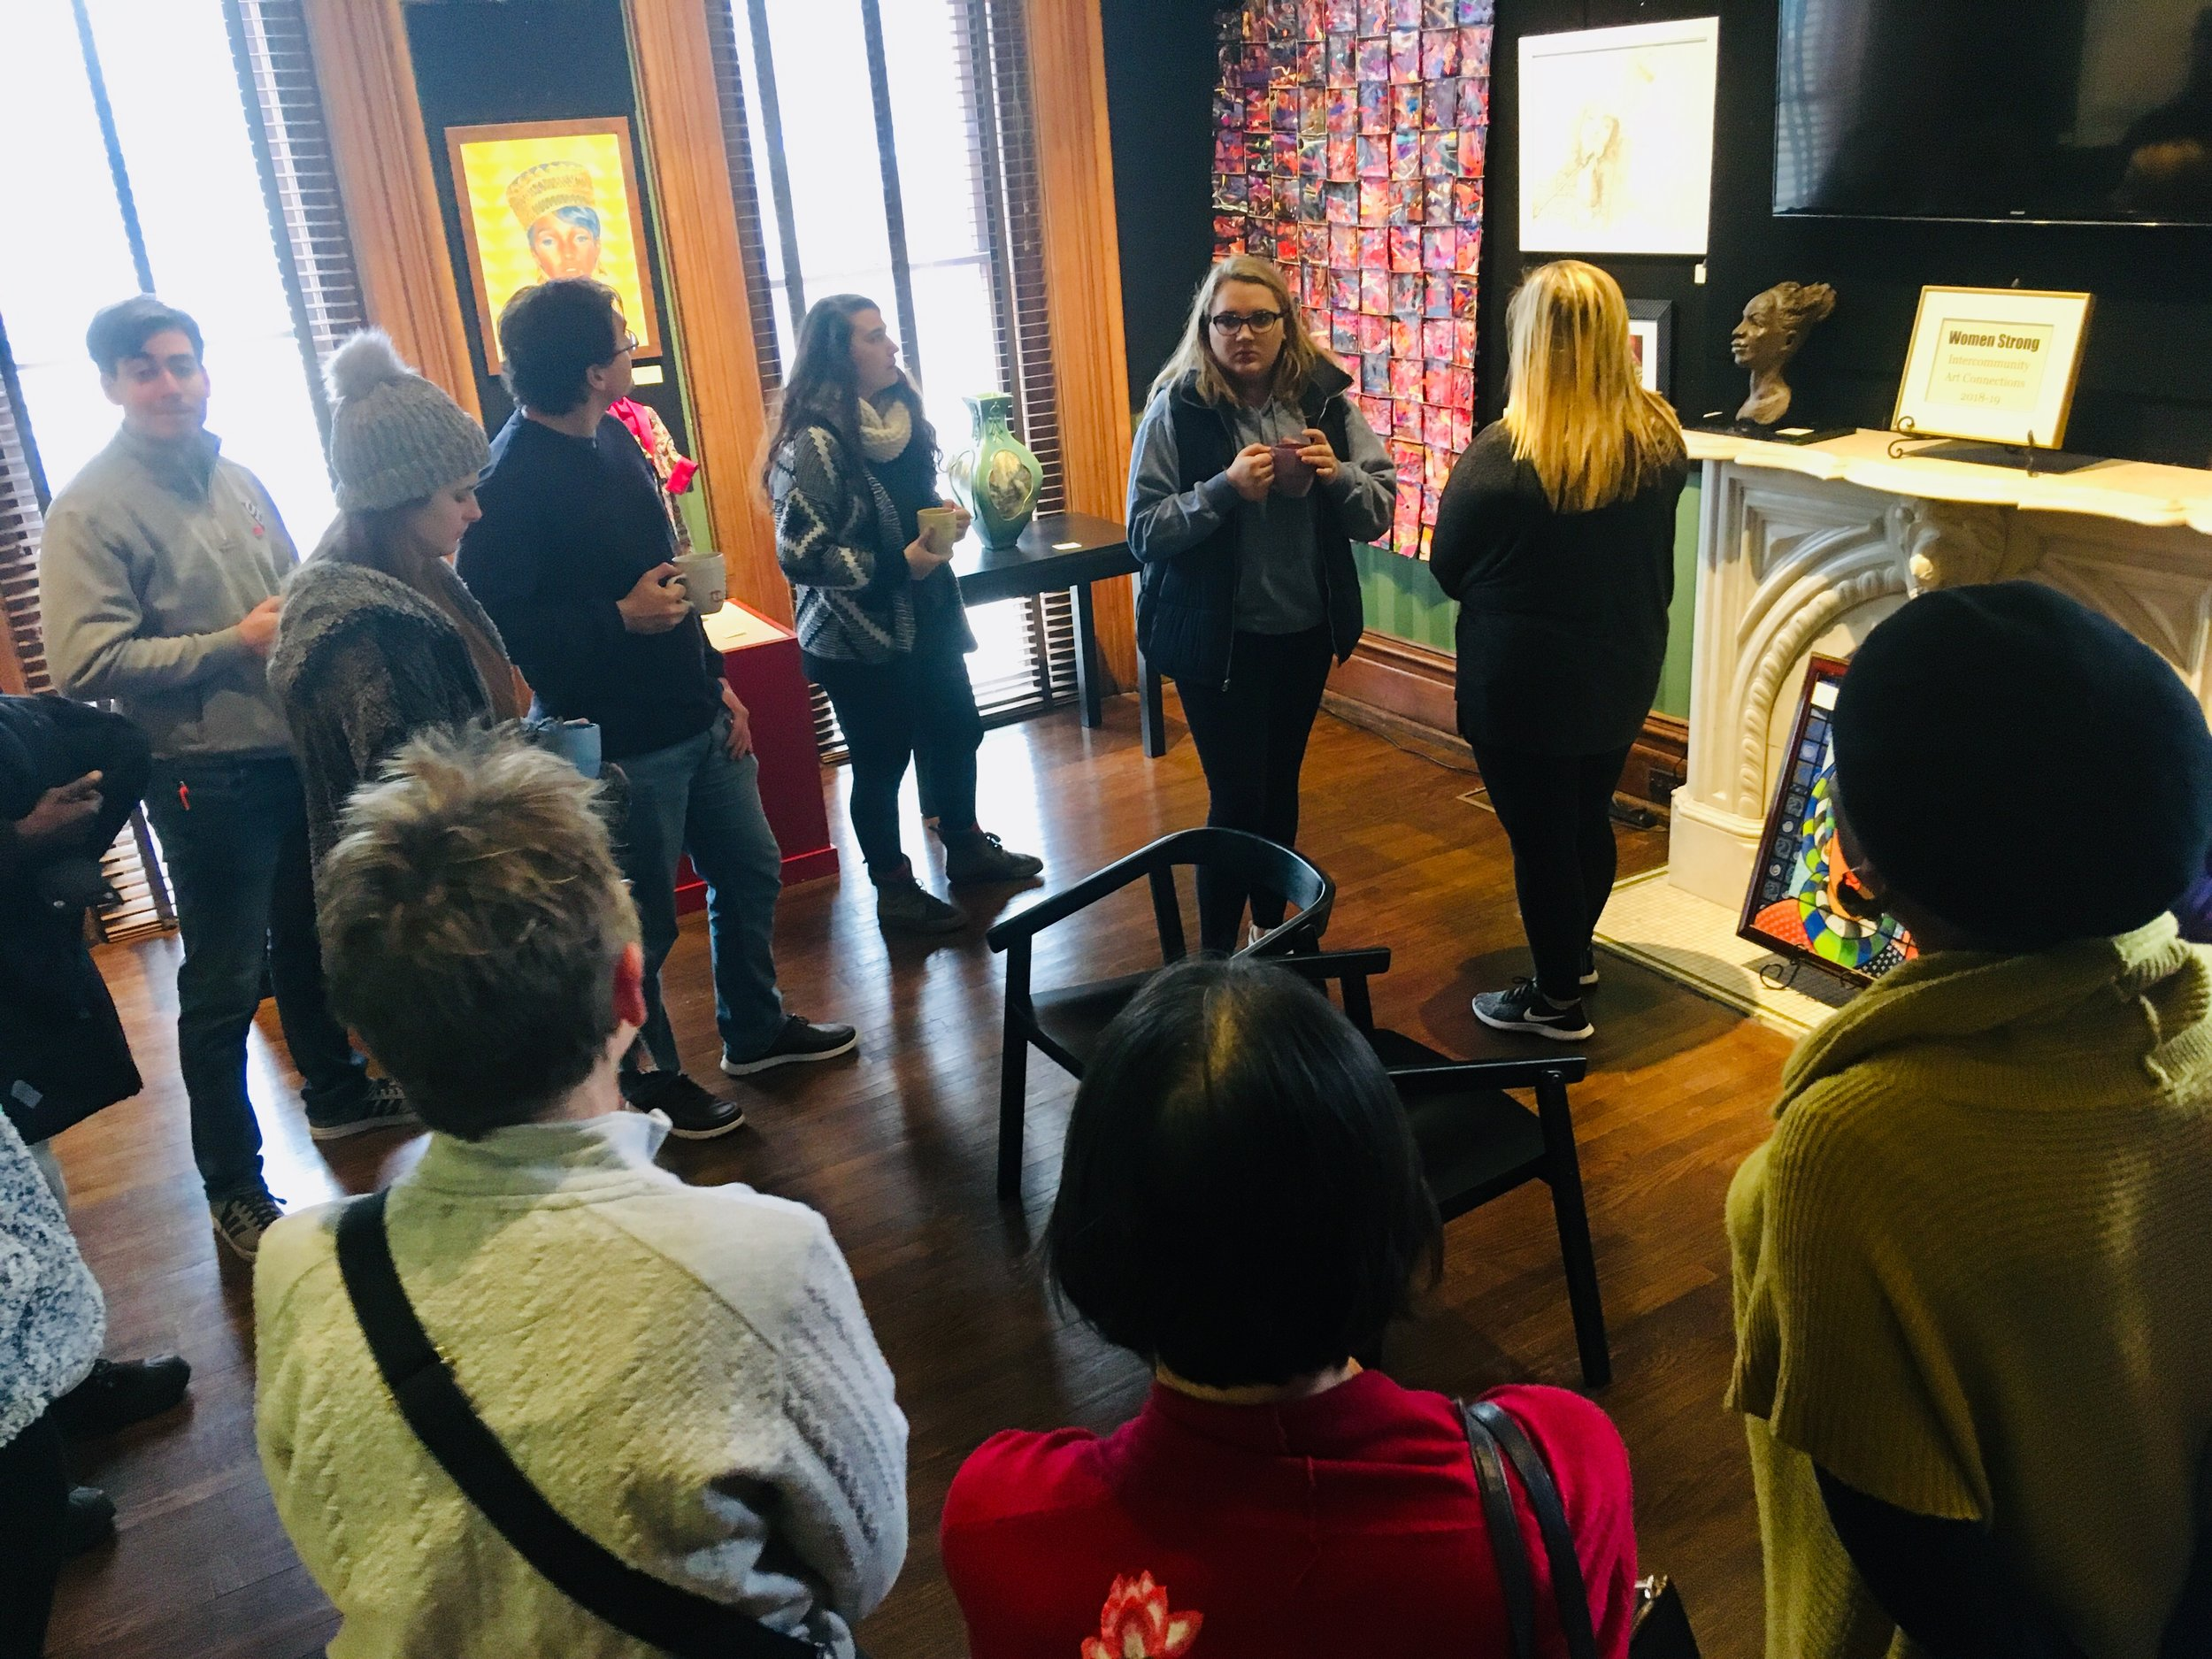 Artists of the Woman Strong exhibit answer questions from University of Dayton students touring the multi-discipline art exhibit in December 2018.